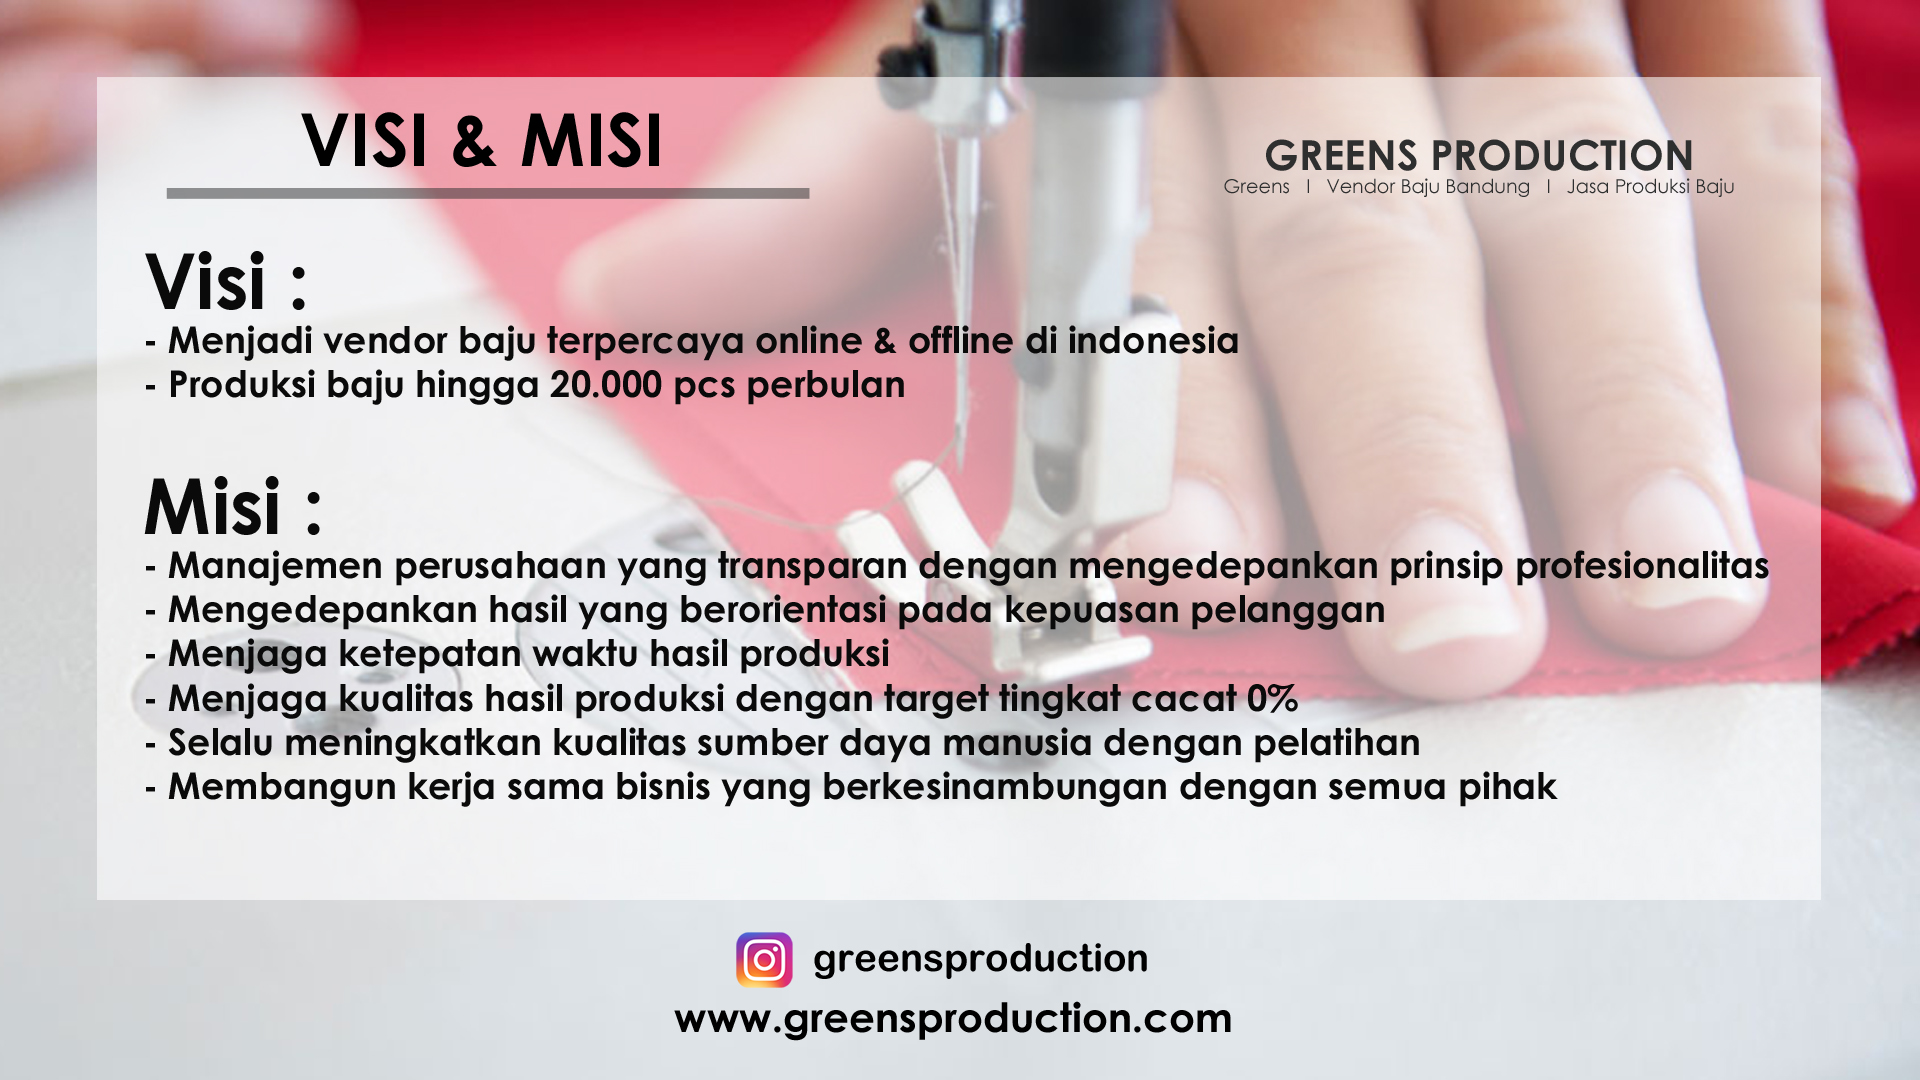 Display-on-Greens-Monitor-5 Tentang Kami greensproduction